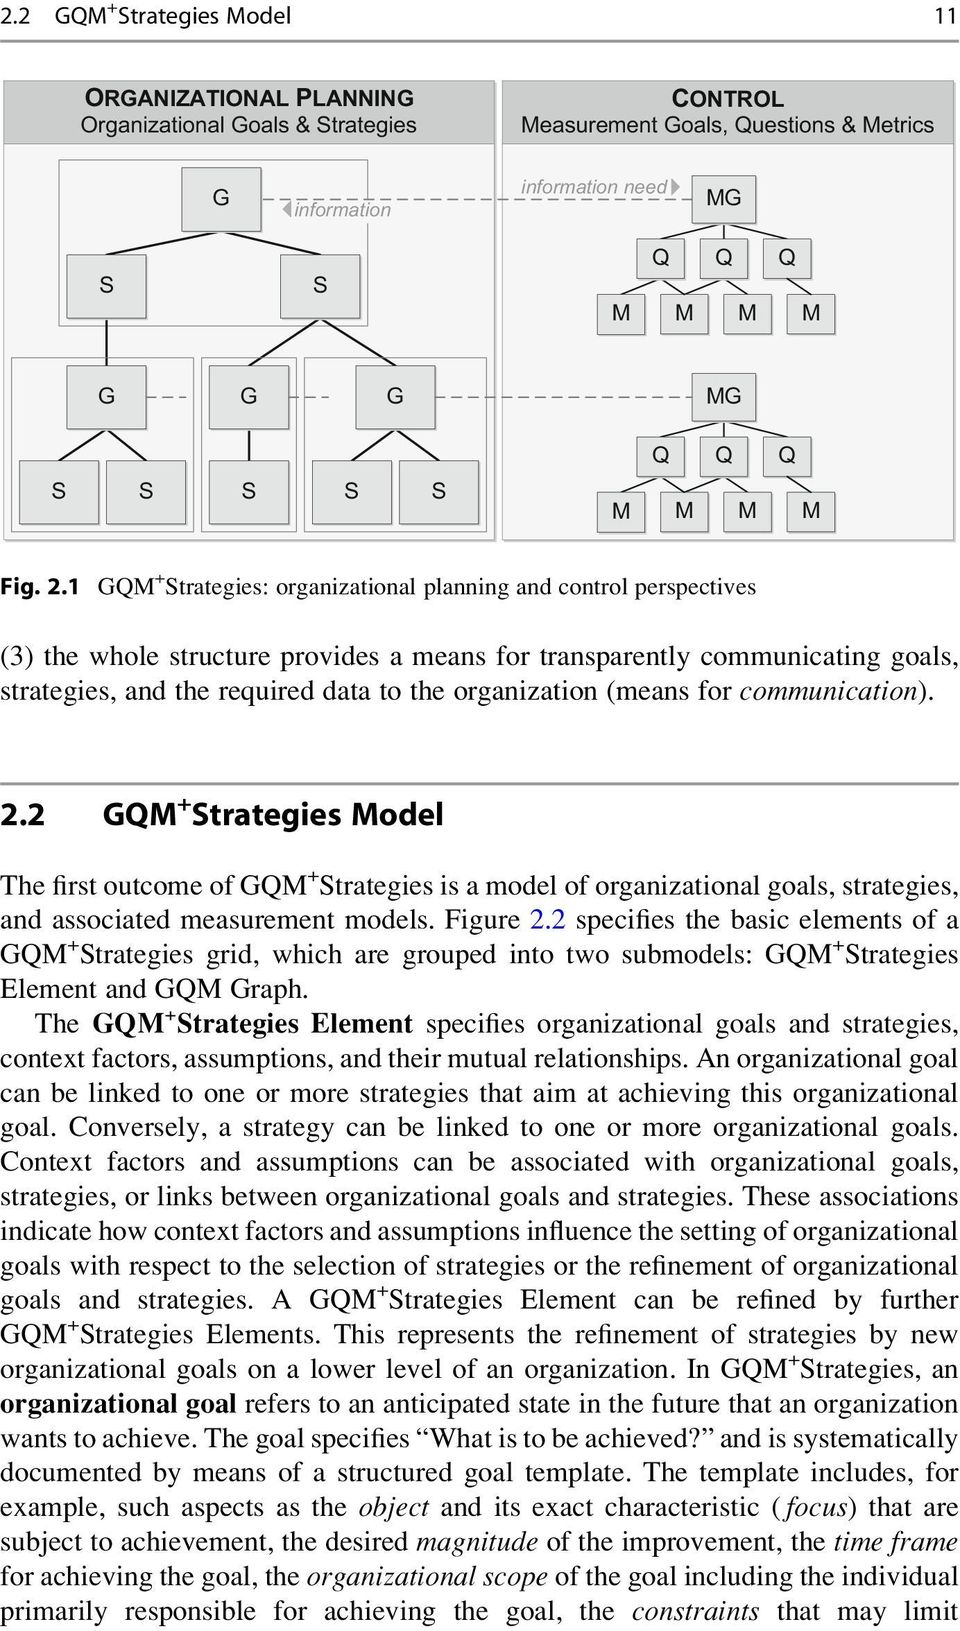 1 GQM + trategies: organizational planning and control perspectives (3) the whole structure provides a means for transparently communicating goals, strategies, and the required data to the